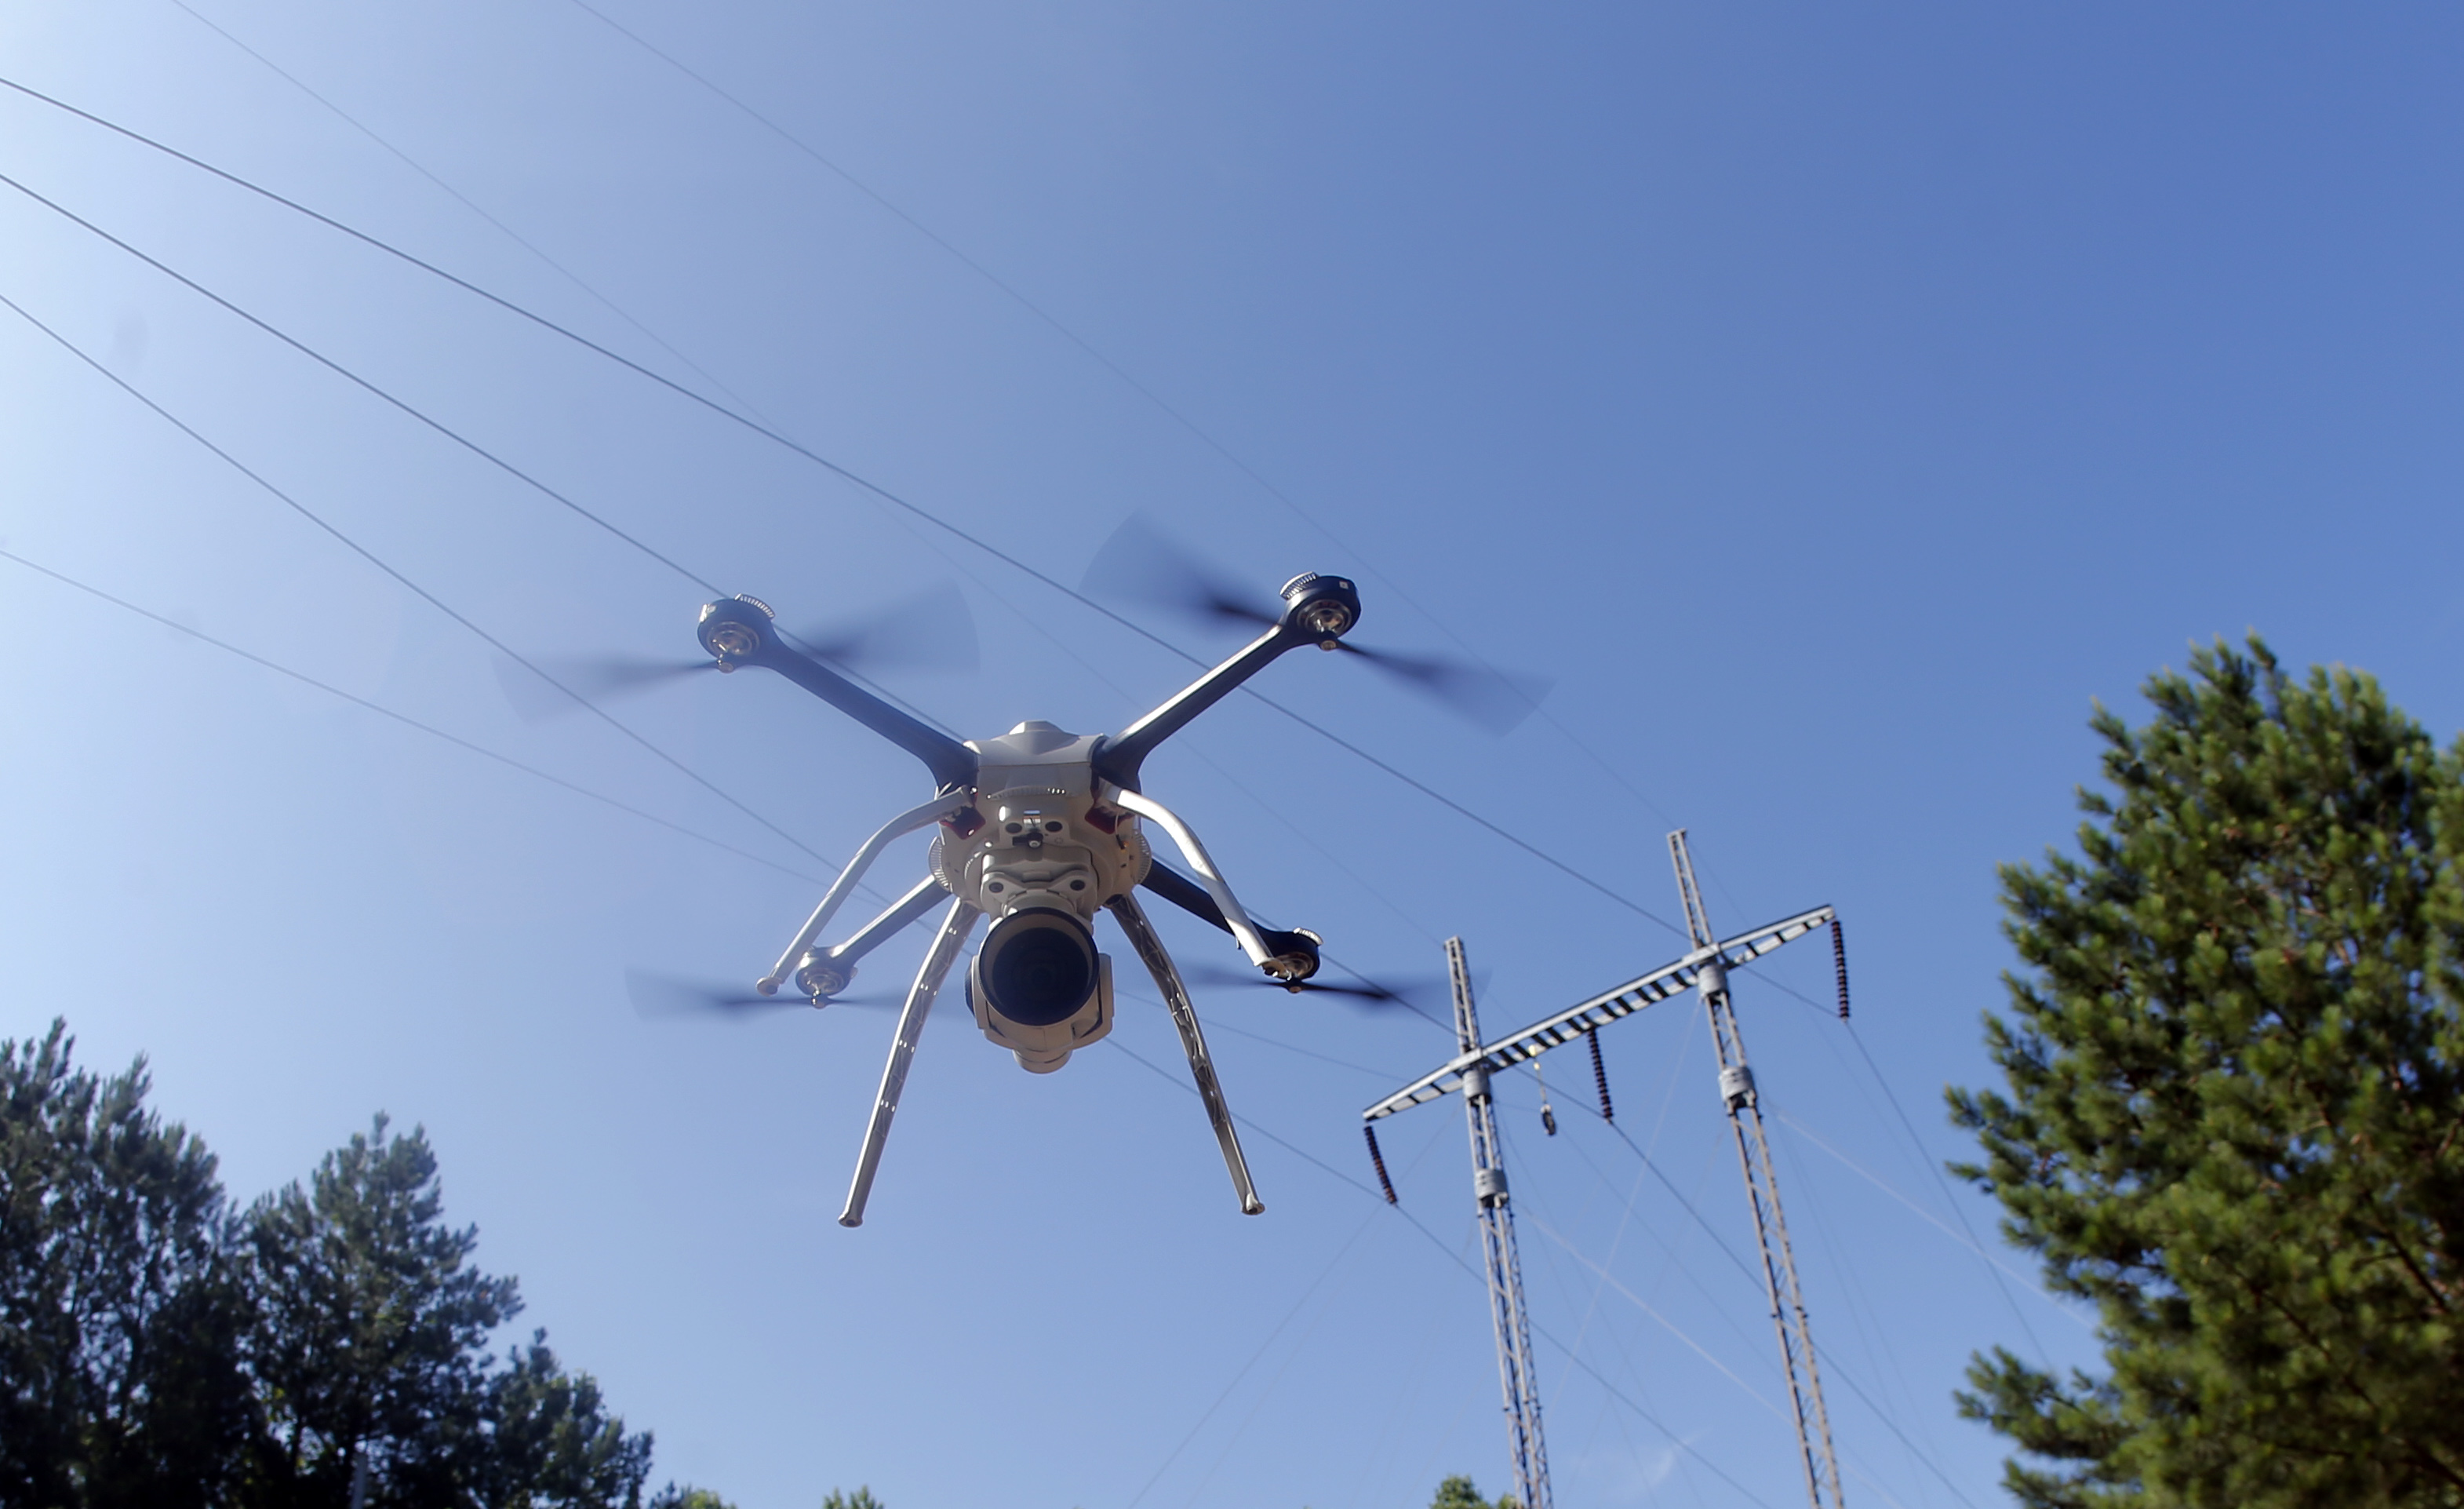 Area group helping evolve the rules of the sky for drone flight